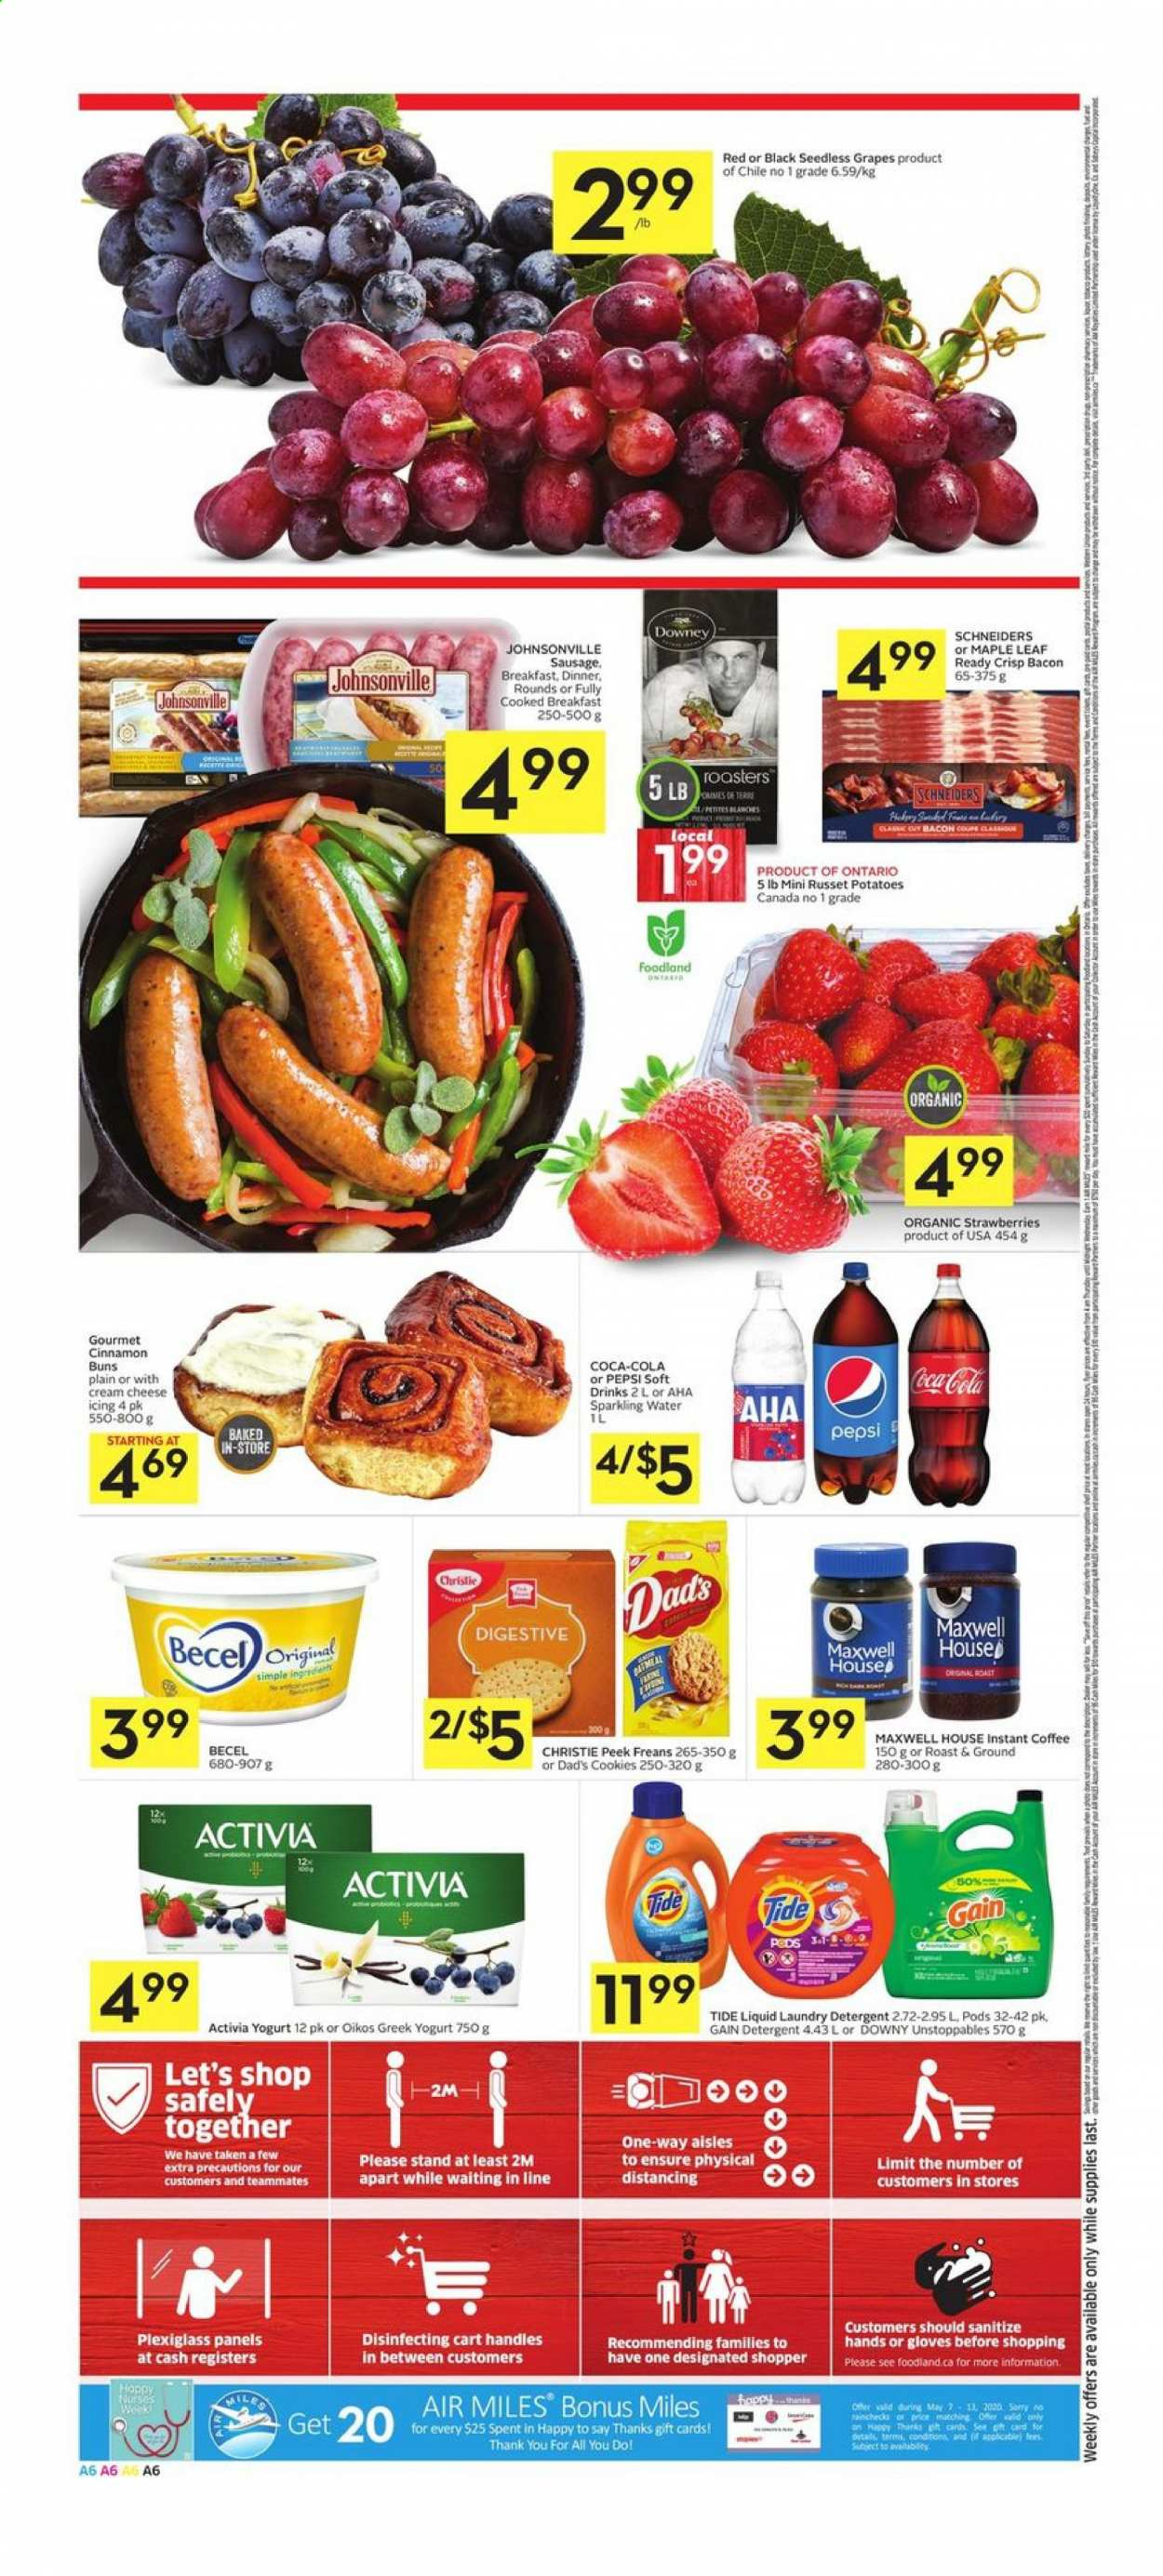 Foodland Flyer  - May 07, 2020 - May 13, 2020. Page 6.